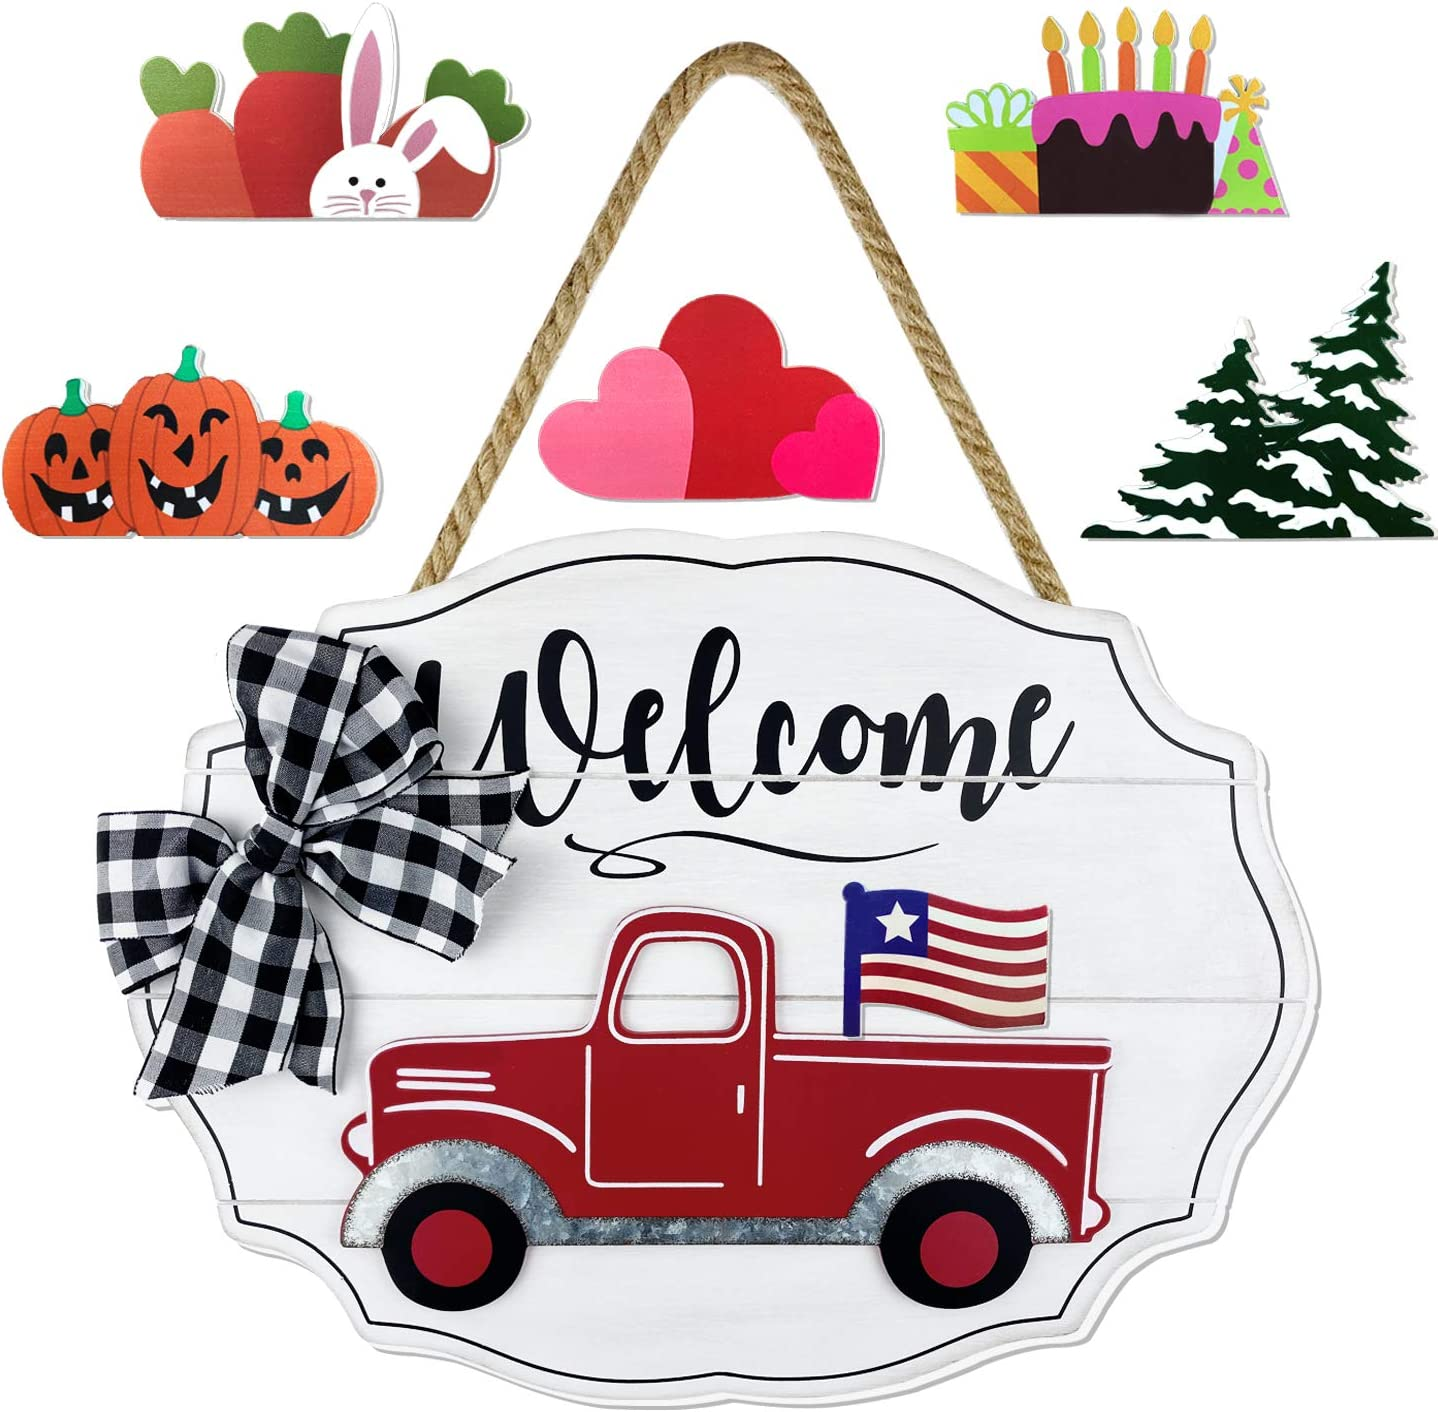 Red Truck Welcome Sign Front Porch Home Decor Wall Hanging Seasonal Interchangeable Farmhouse Wooden Door Decoration Sign for Holiday Spring Valentine's Day Easter Independence Day Christmas - White